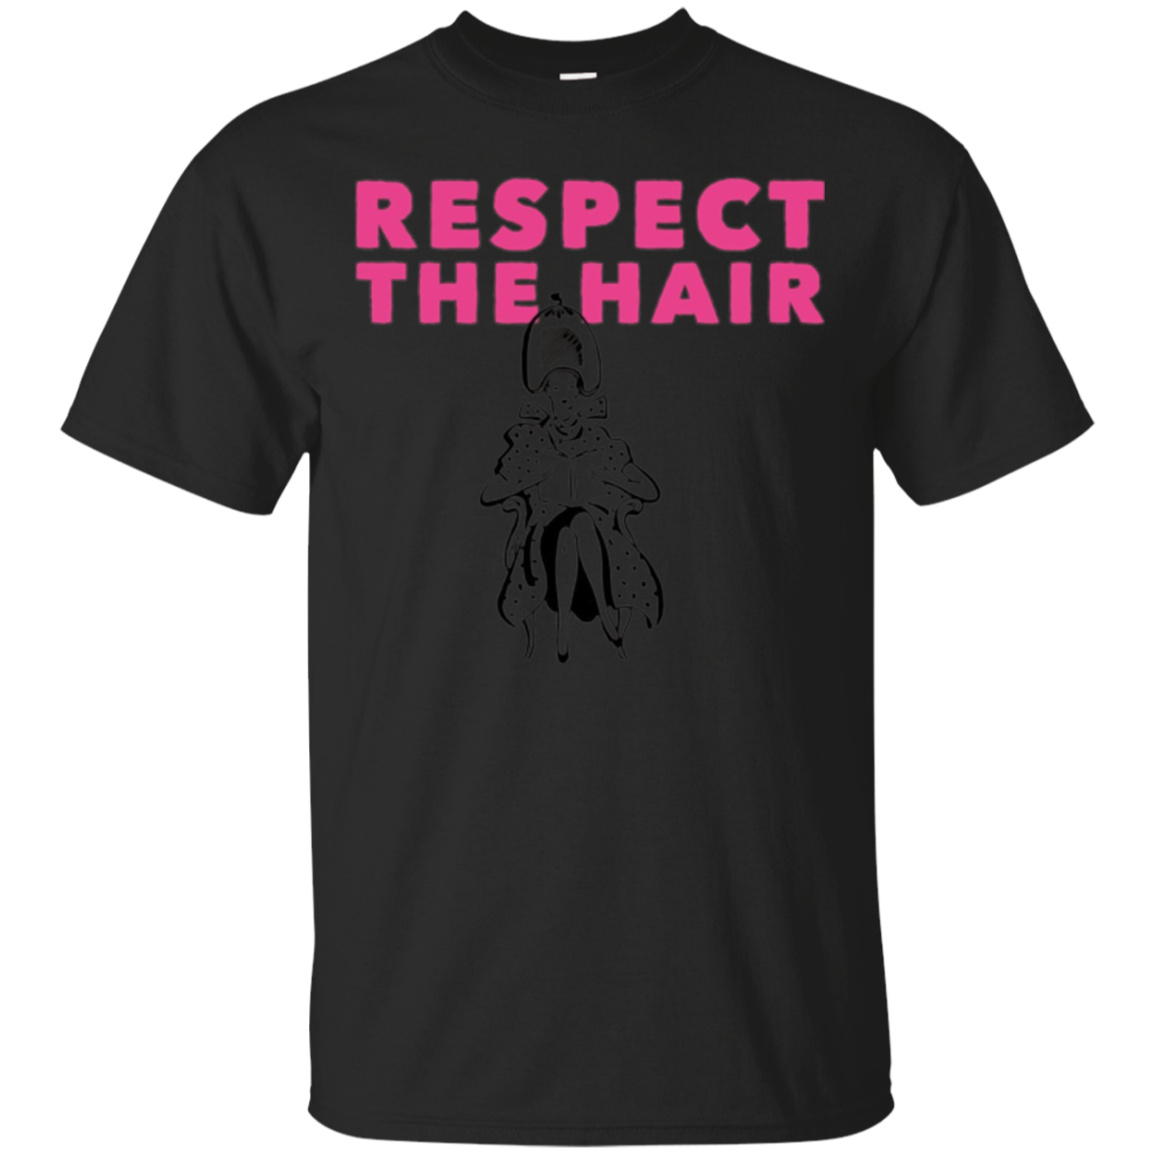 Respect the hair - Perfect hairdresser T shirt Pink writing